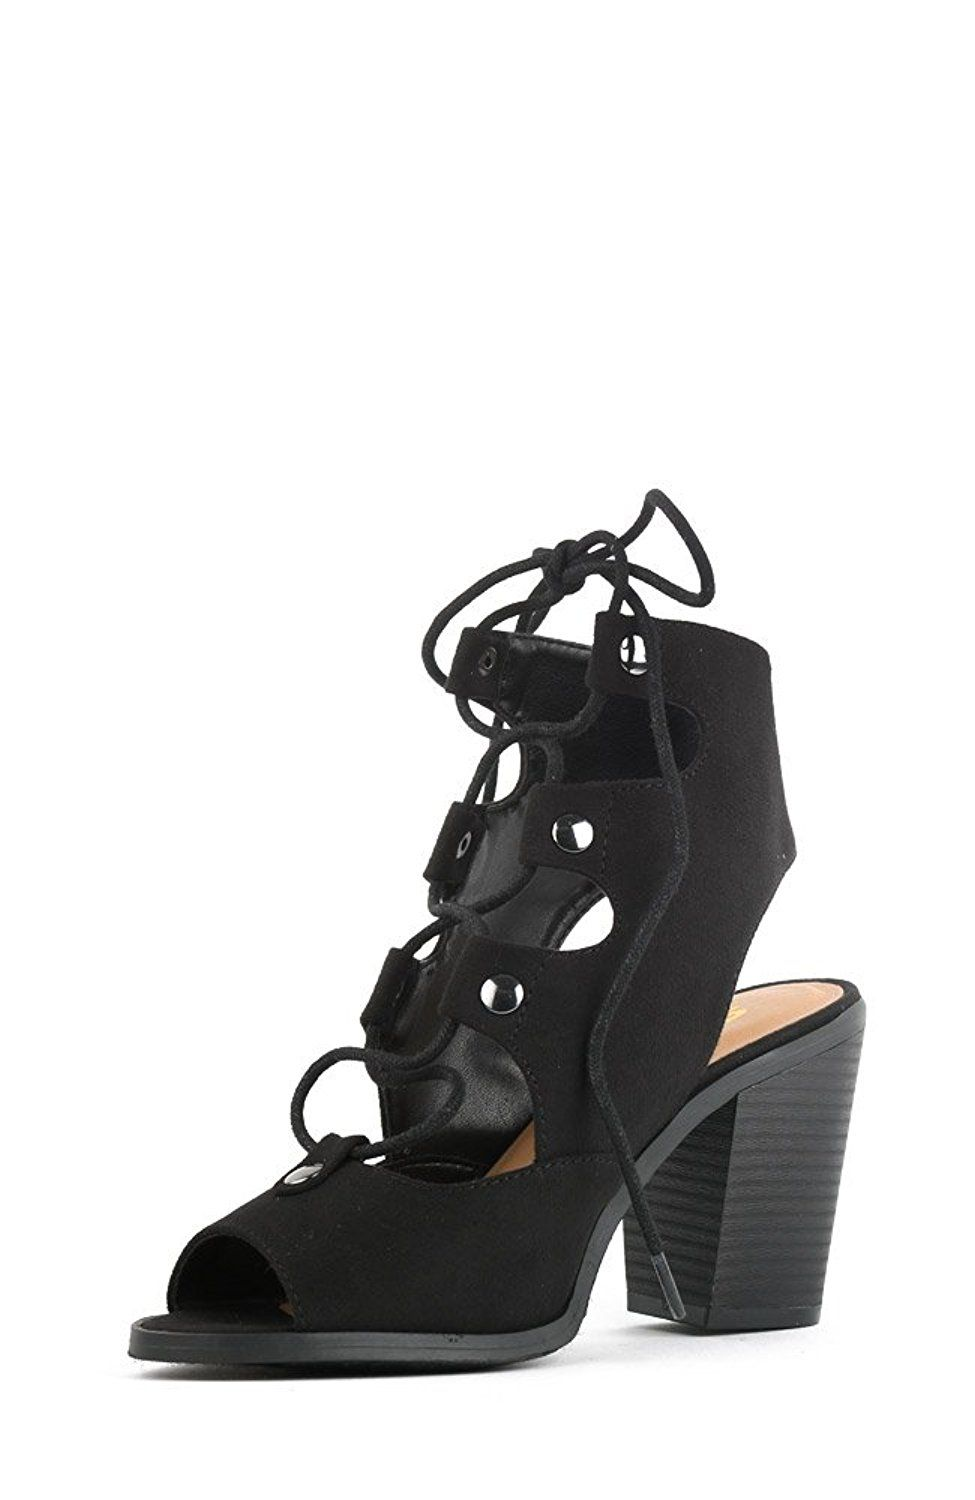 4a1b1715e9c Soda RACE Women s Stylish Lace Up Gladiator Cage Low Chunky Block Heel  Sandal - Black Imitation Suede   Review more details here   Gladiator  sandals